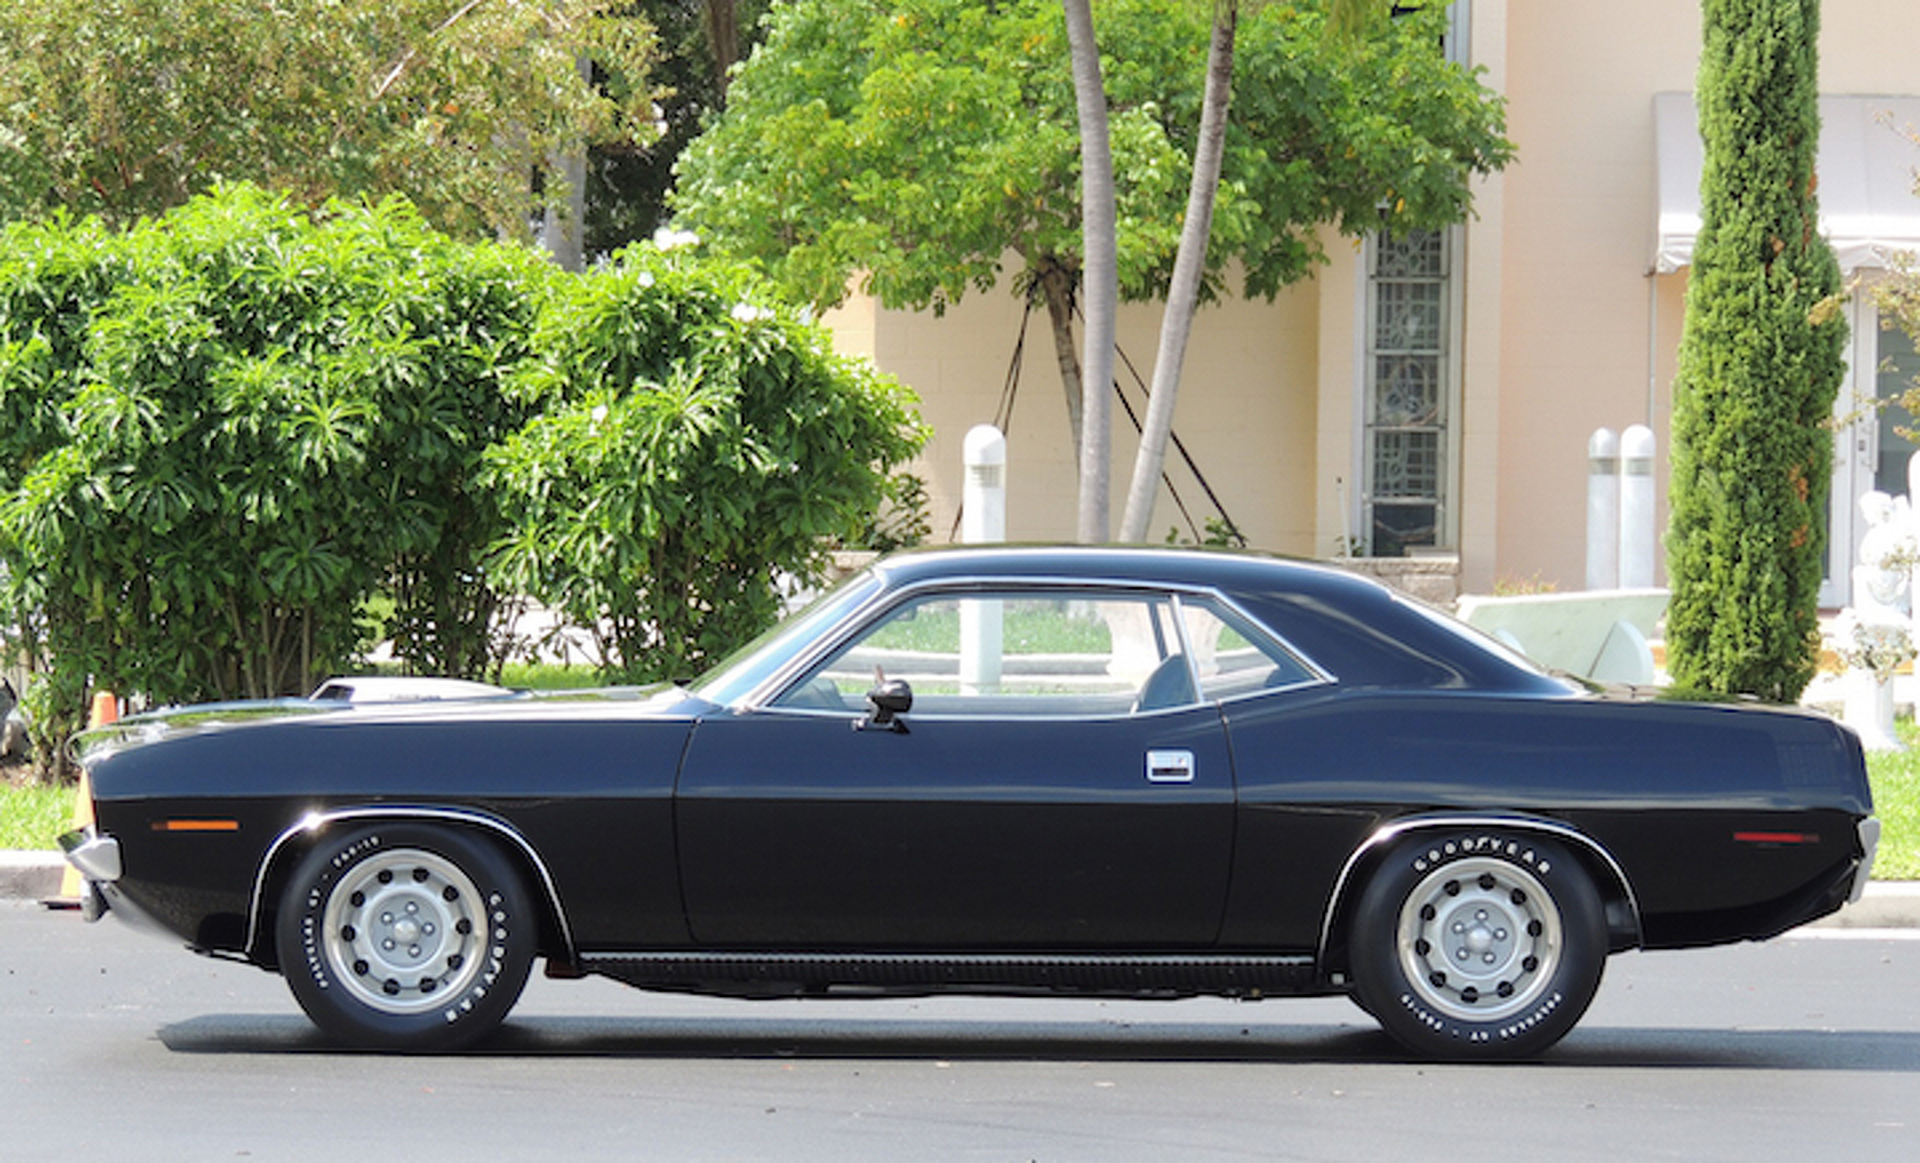 History Of The Plymouth Barracuda In 1970 The Cuda Came Into Its Own